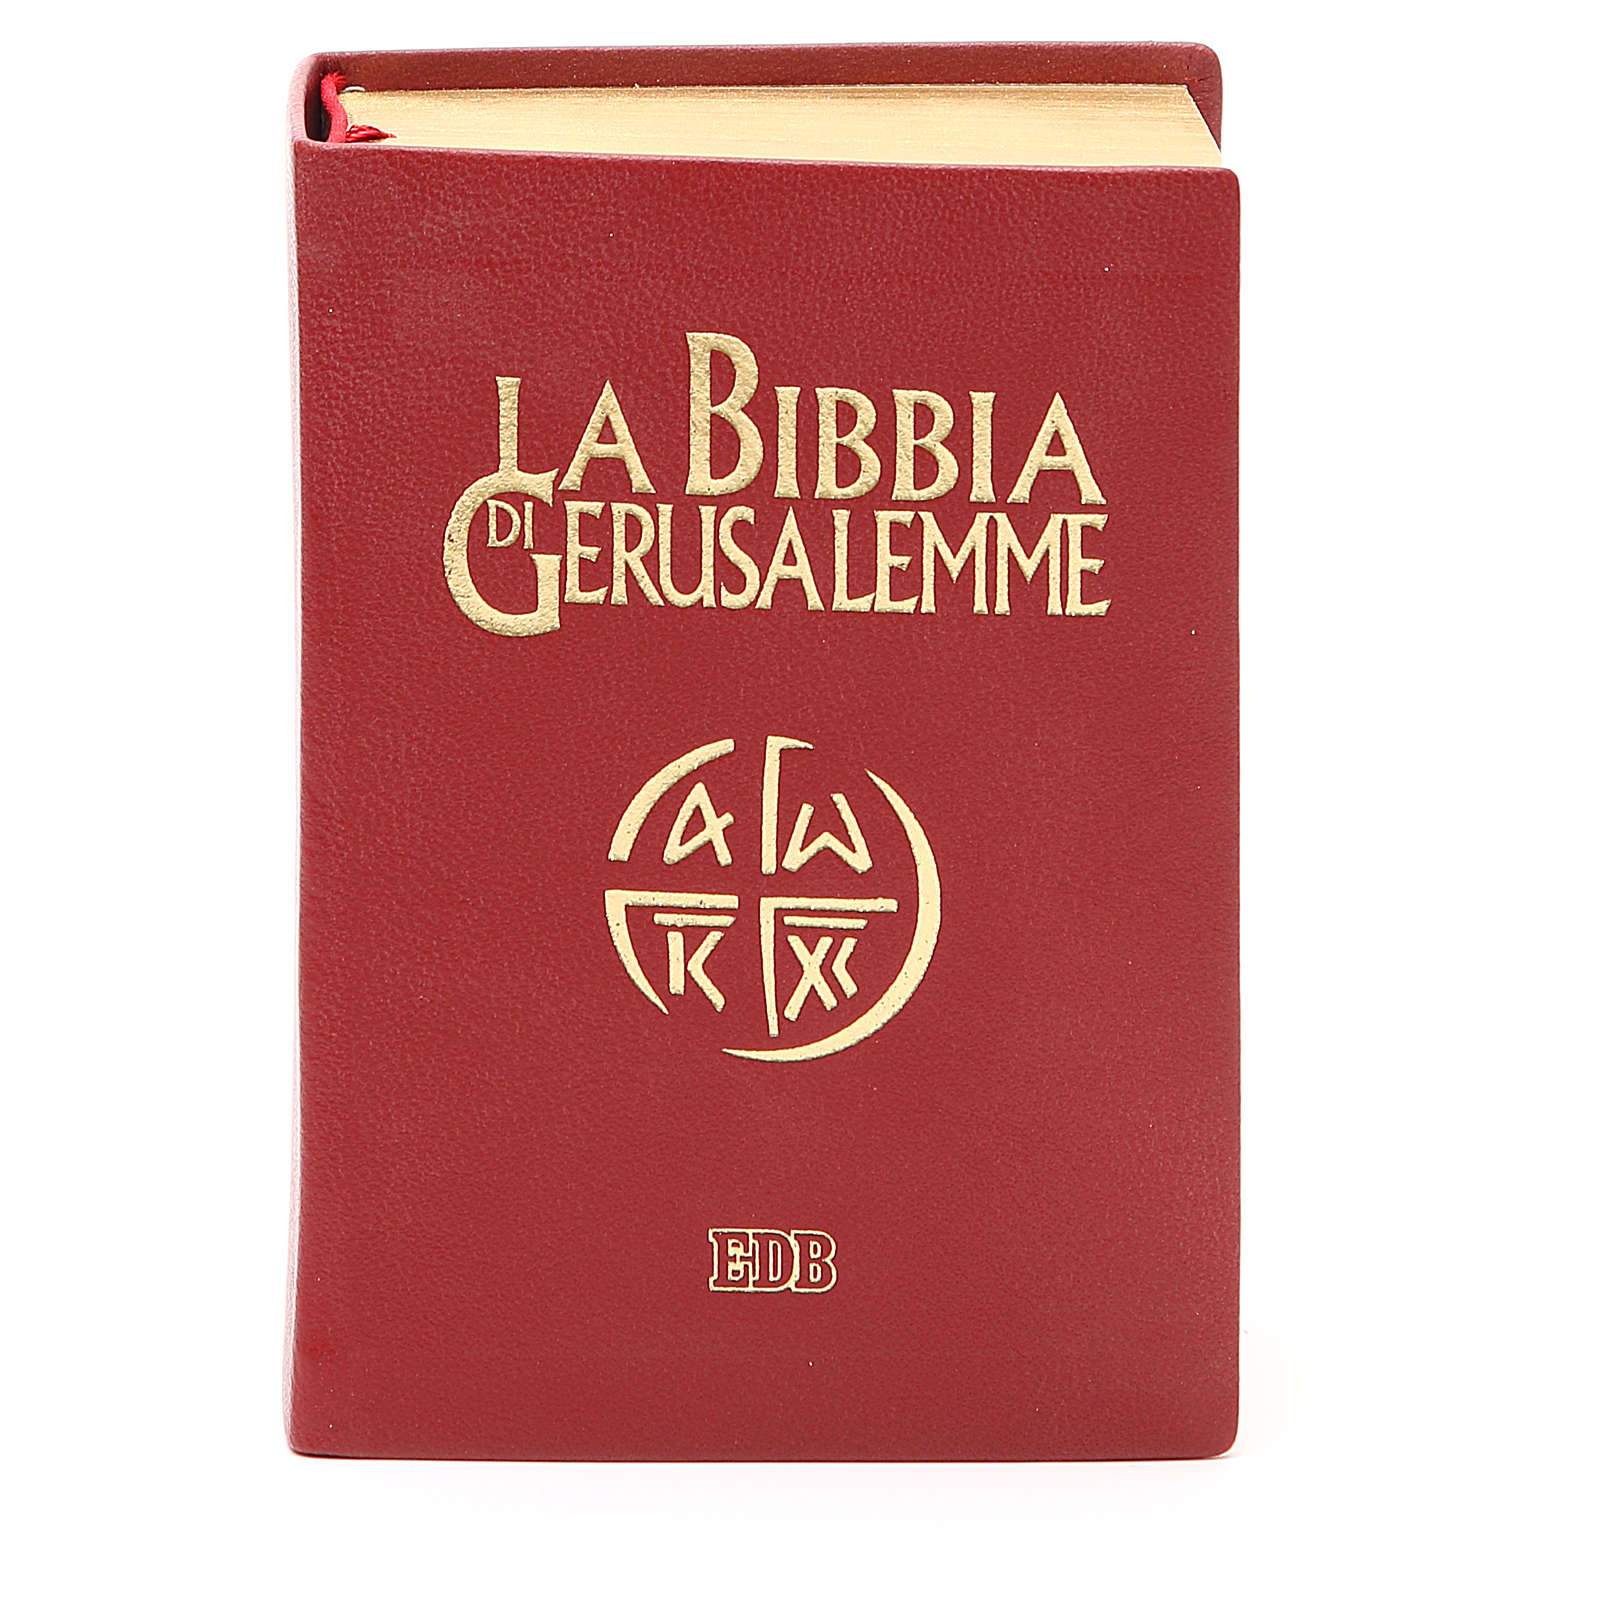 Jerusalem bible in red leather pocket edition 4